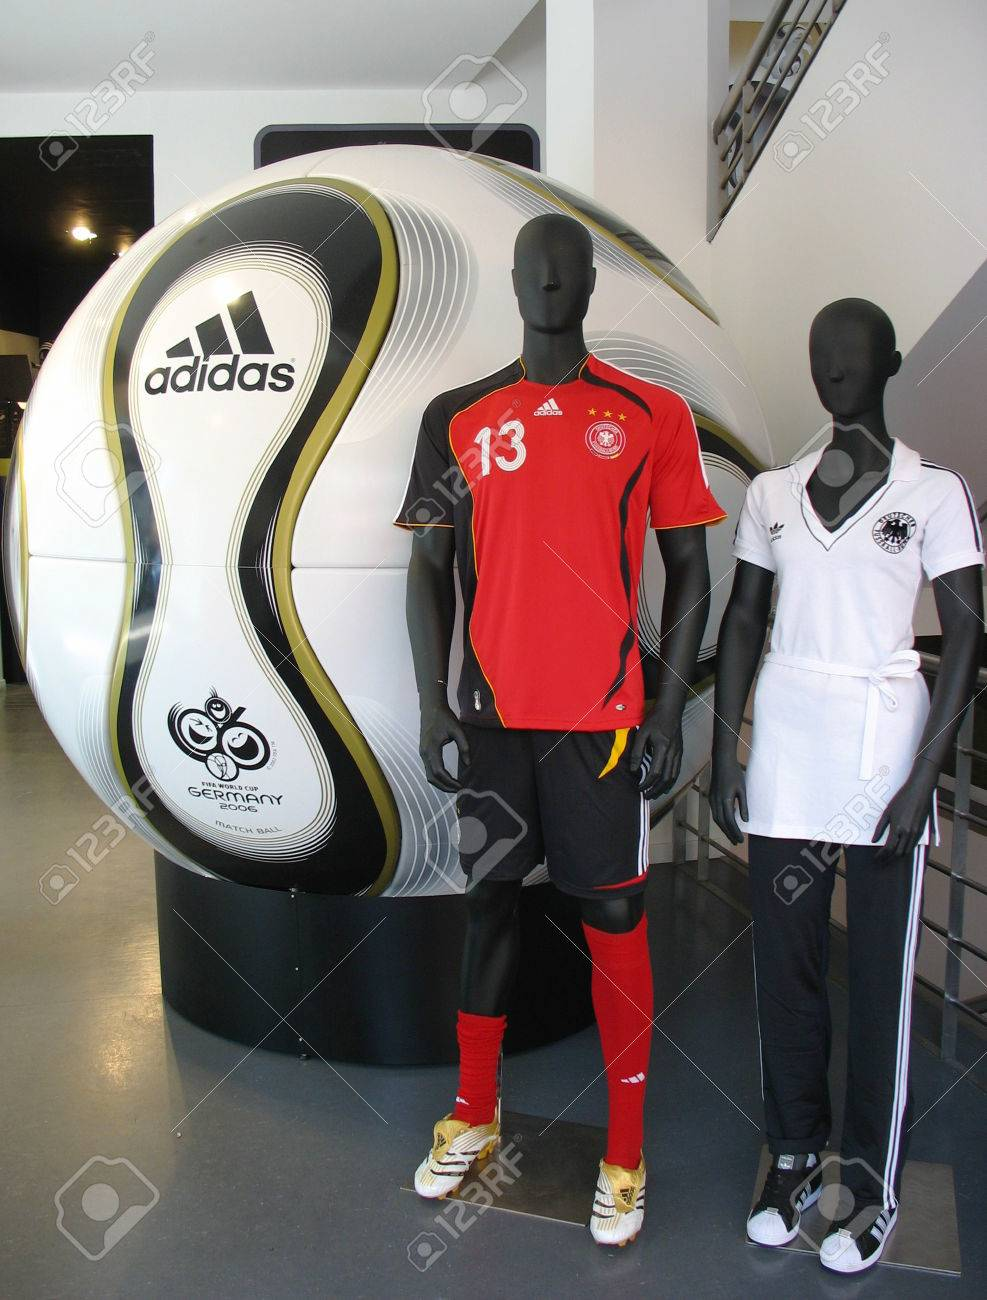 GERMANY - JULY 27 The Adidas Teamgeist soccer ball on display on July 27 483c4ec7a889